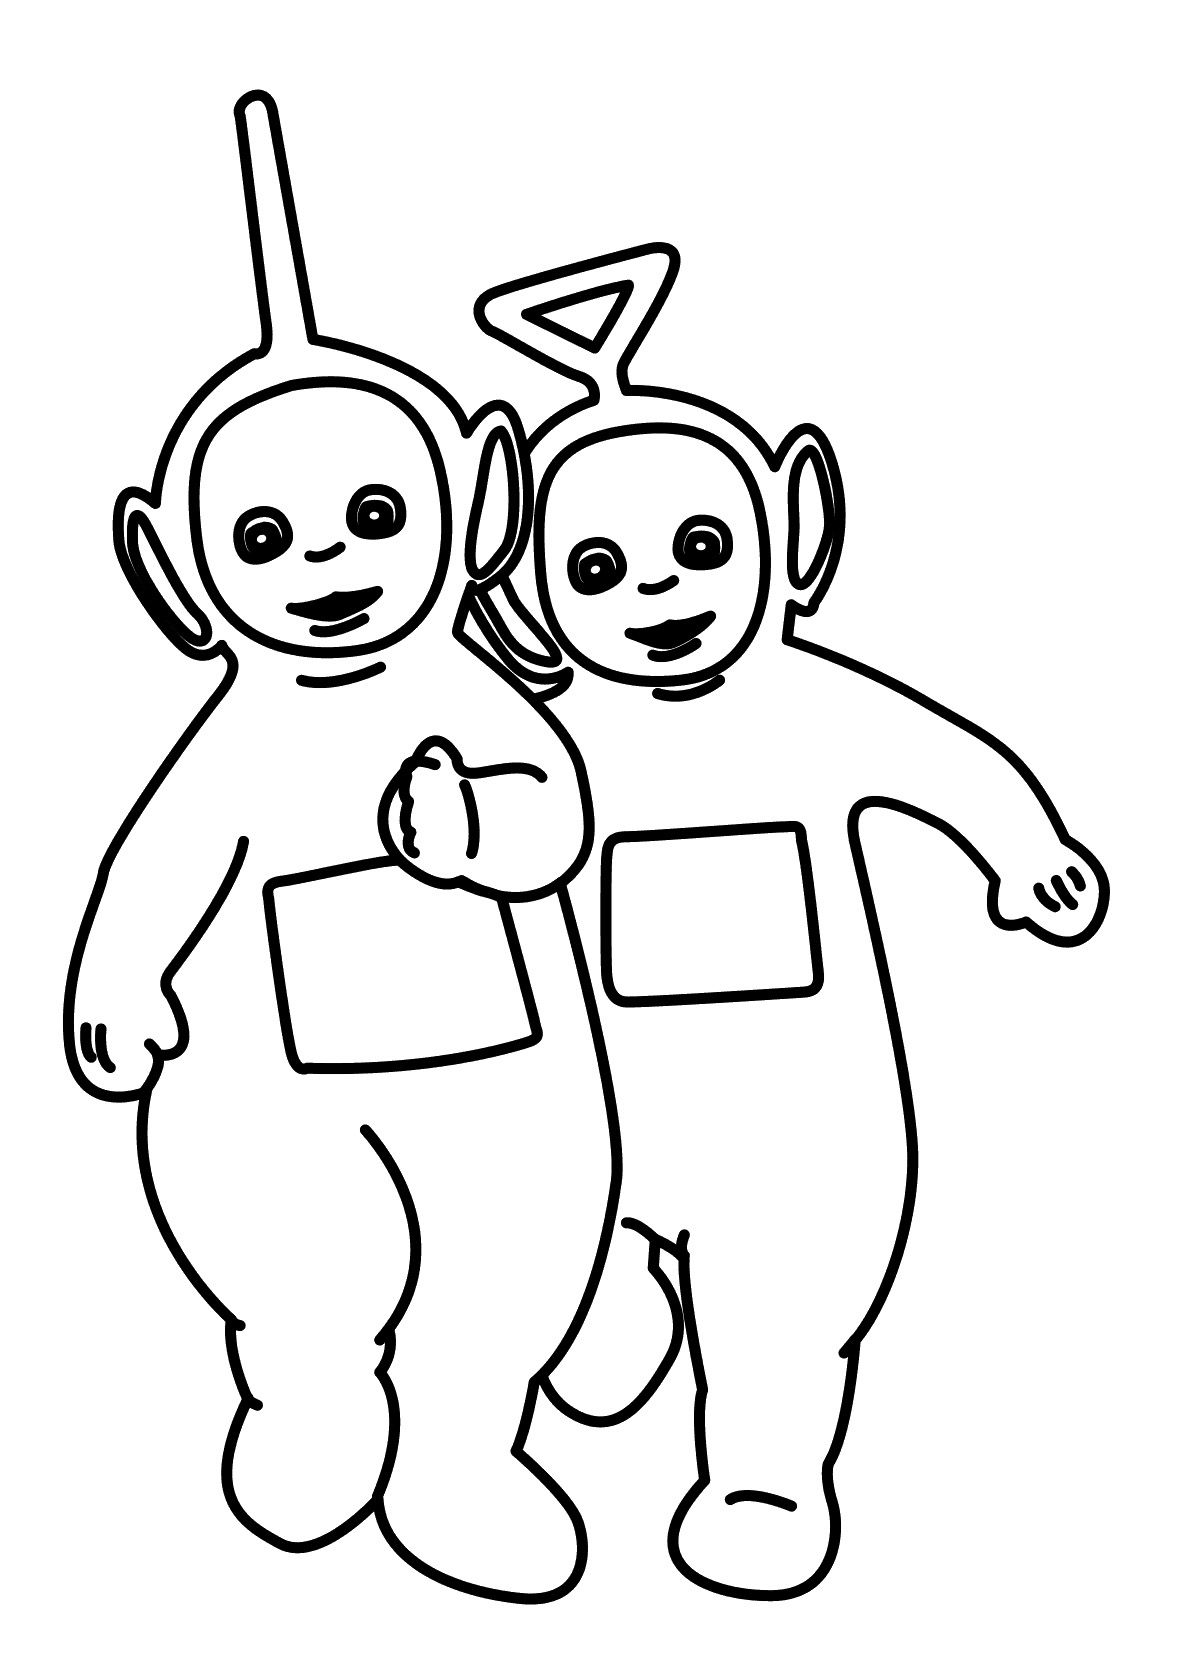 teletubbies tinky winky and dipsy coloring pages - Teletubbies Dipsy Coloring Pages